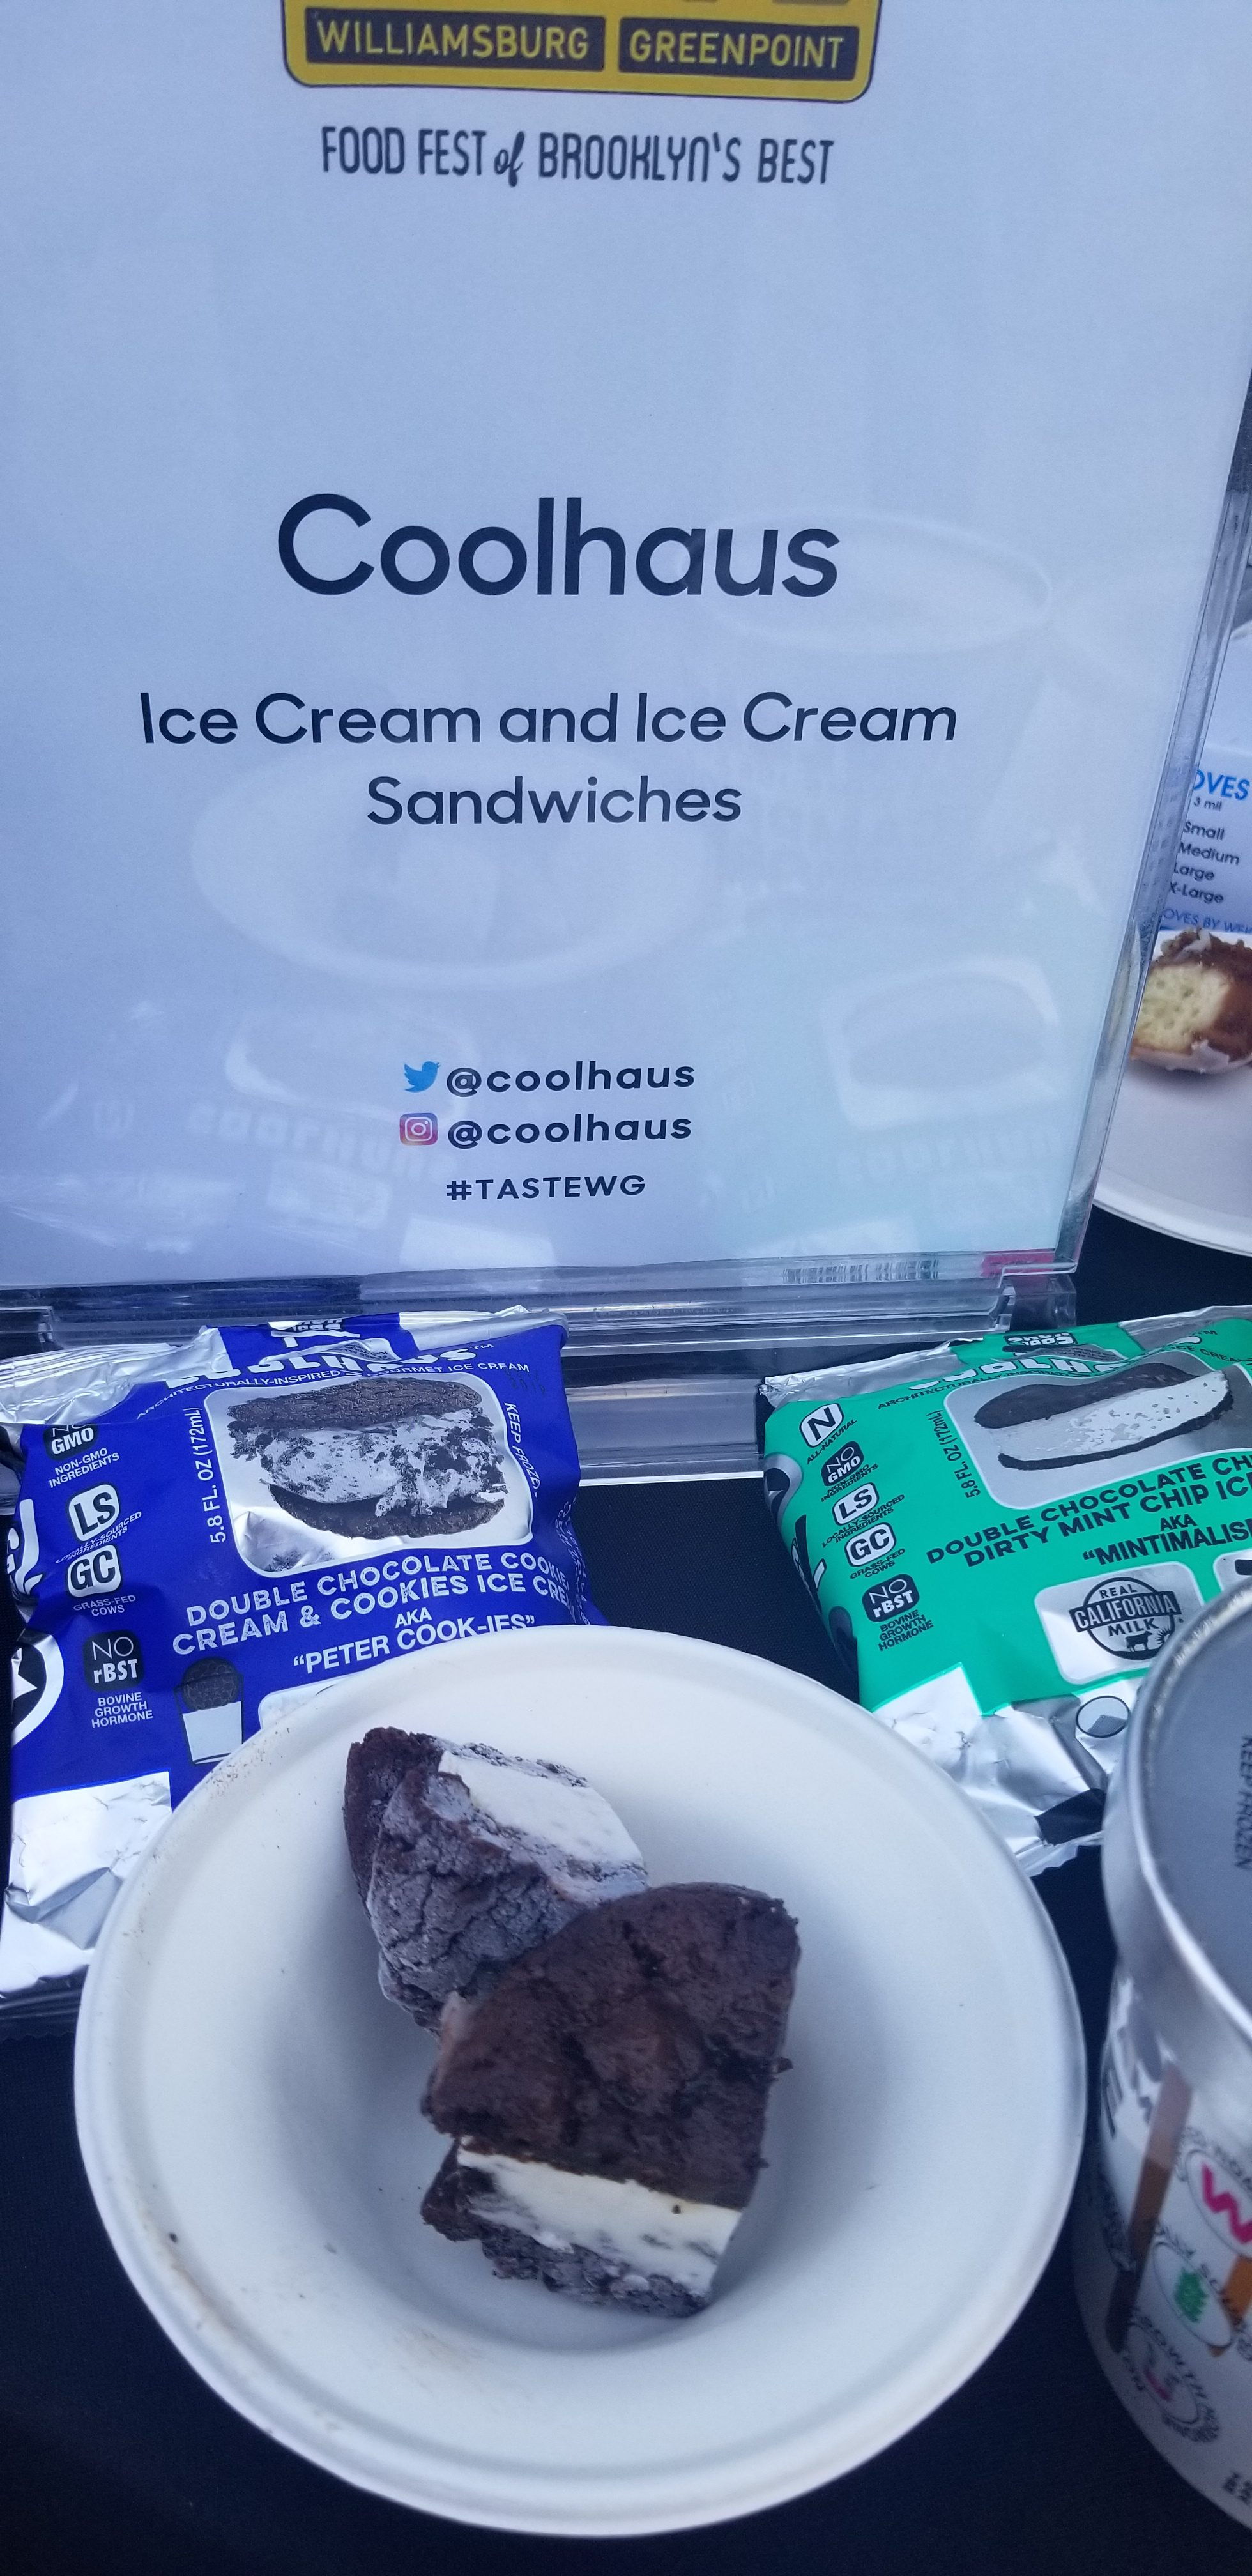 Coolhaus ice cream sandwich taste wg nyc